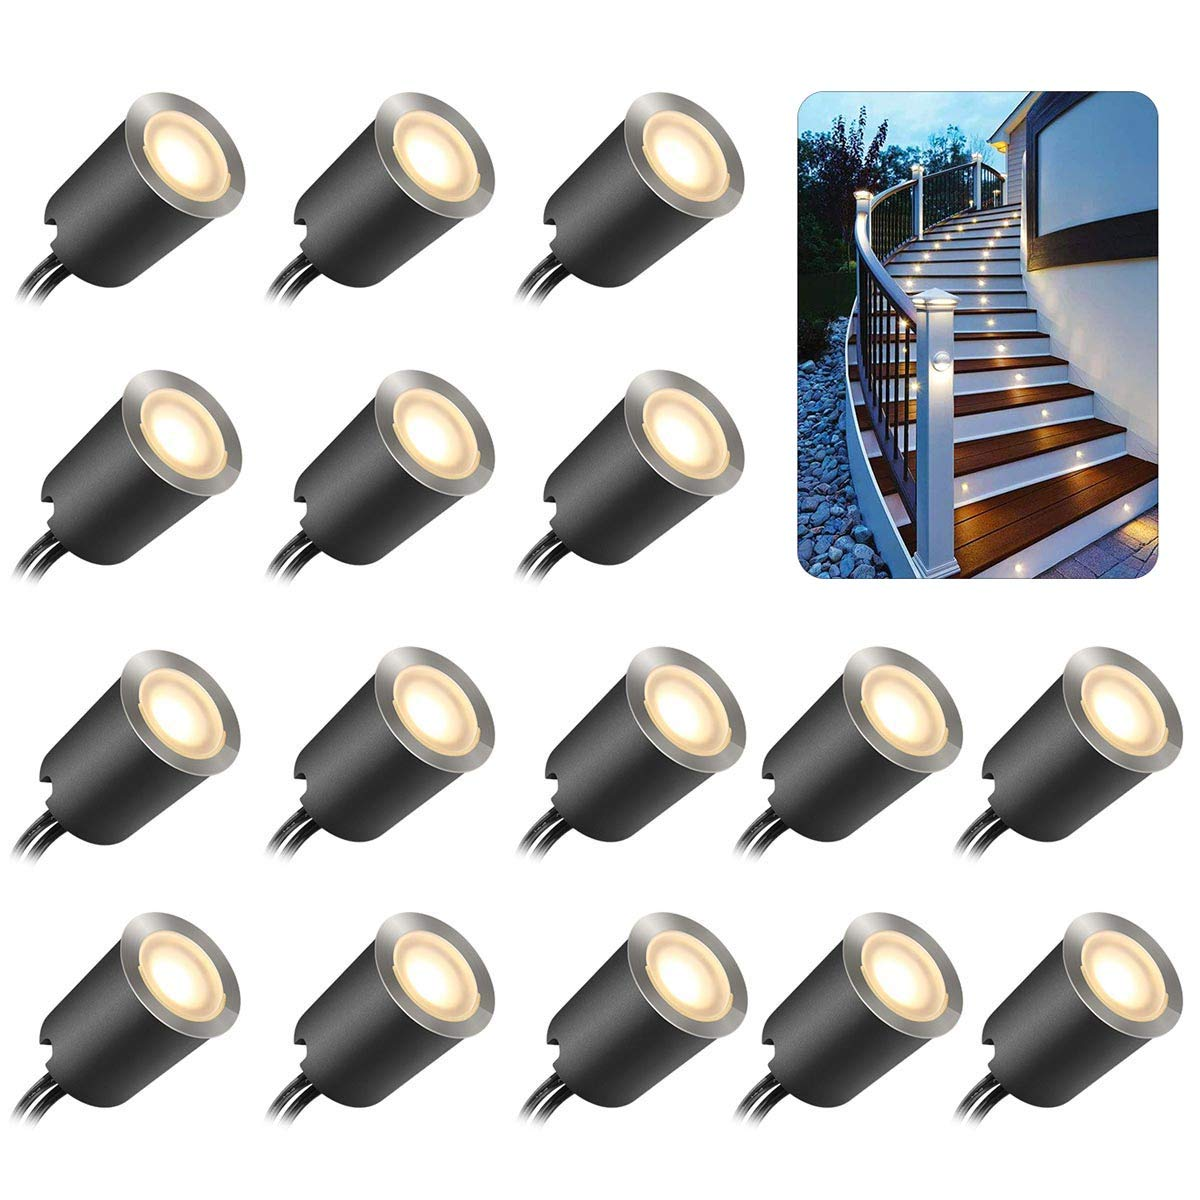 Recessed LED Deck Light Kits with Protecting Shell φ32mm,SMY in Ground Outdoor LED Landscape Lighting IP67 Waterproof, 12V Low Voltage for Garden,Yard Steps,Stair,Patio,Floor,Kitchen Decoration by SMY